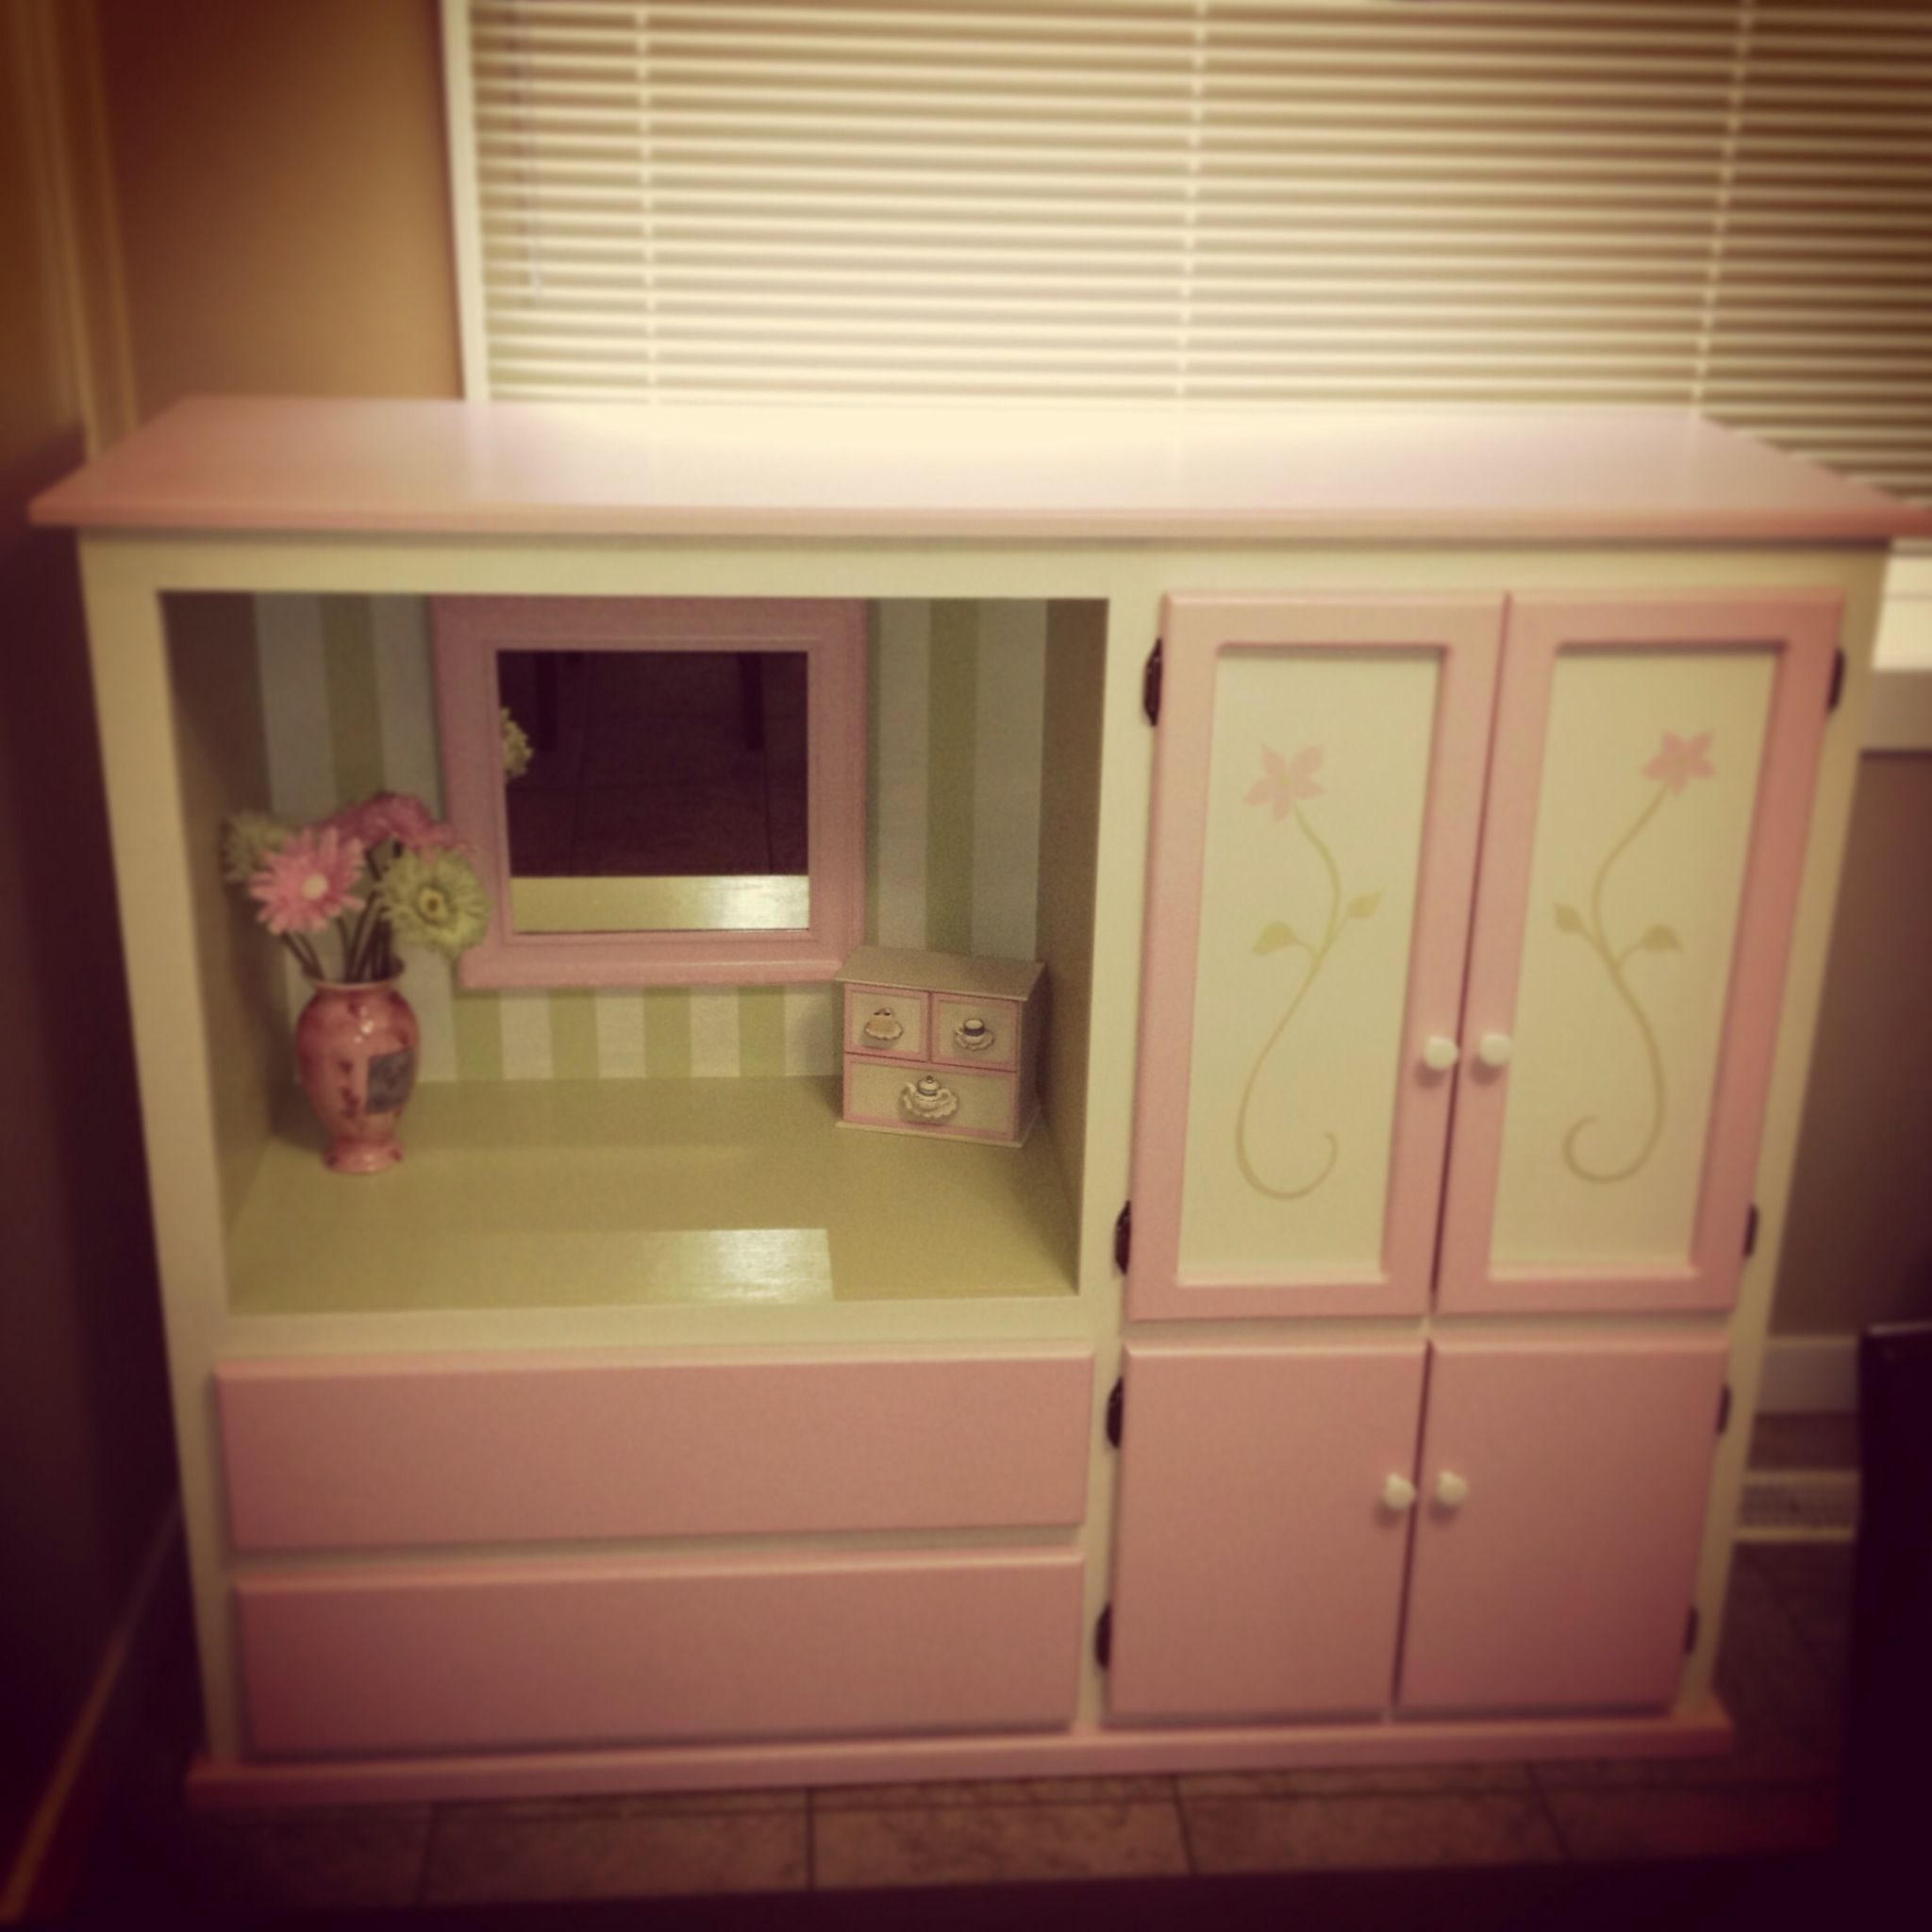 Cabinet Design For Clothes For Kids Upcycled Tv Cabinet Into Children's Vanitywardrobe  Diy Things